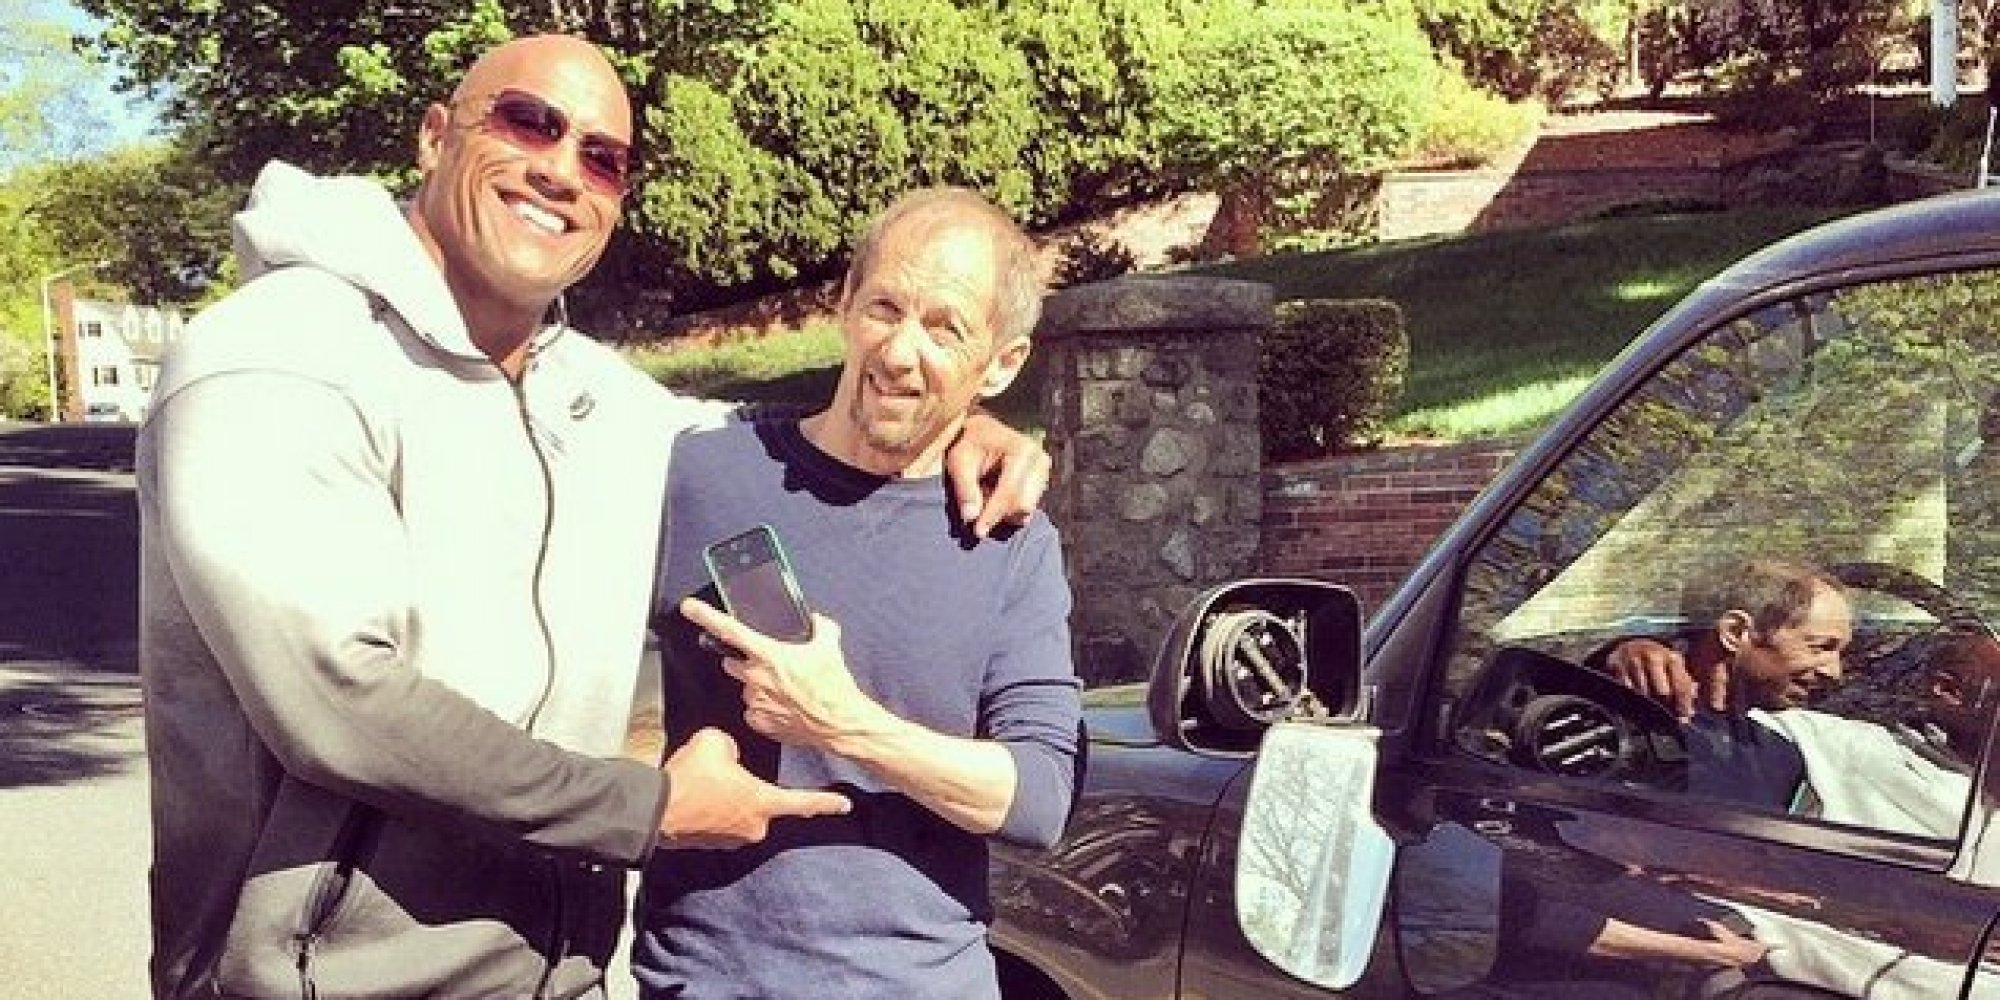 The Rock Hit Someone's Car And